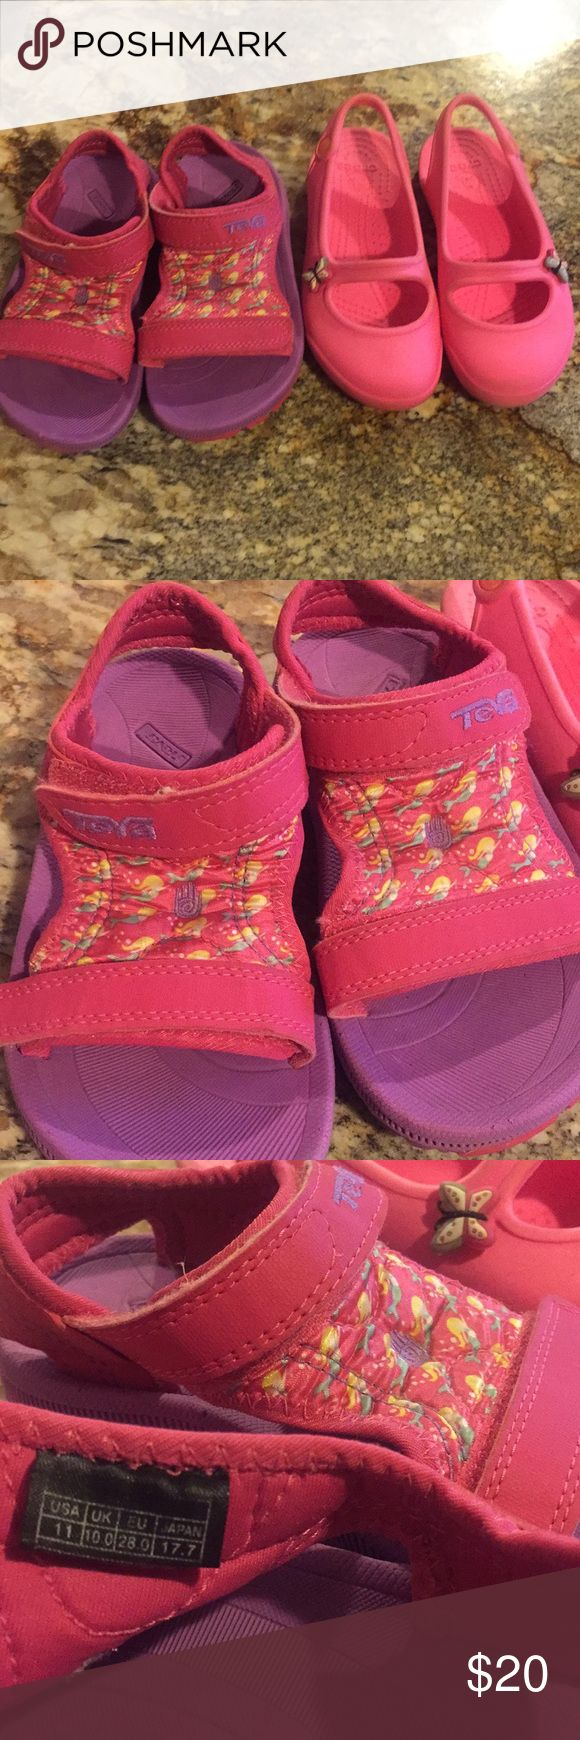 Little girl water shoes in size 11 Used and worn but still has lot of life, both are size 11, this is a pair of teva and crocs. Teva Shoes Water Shoes